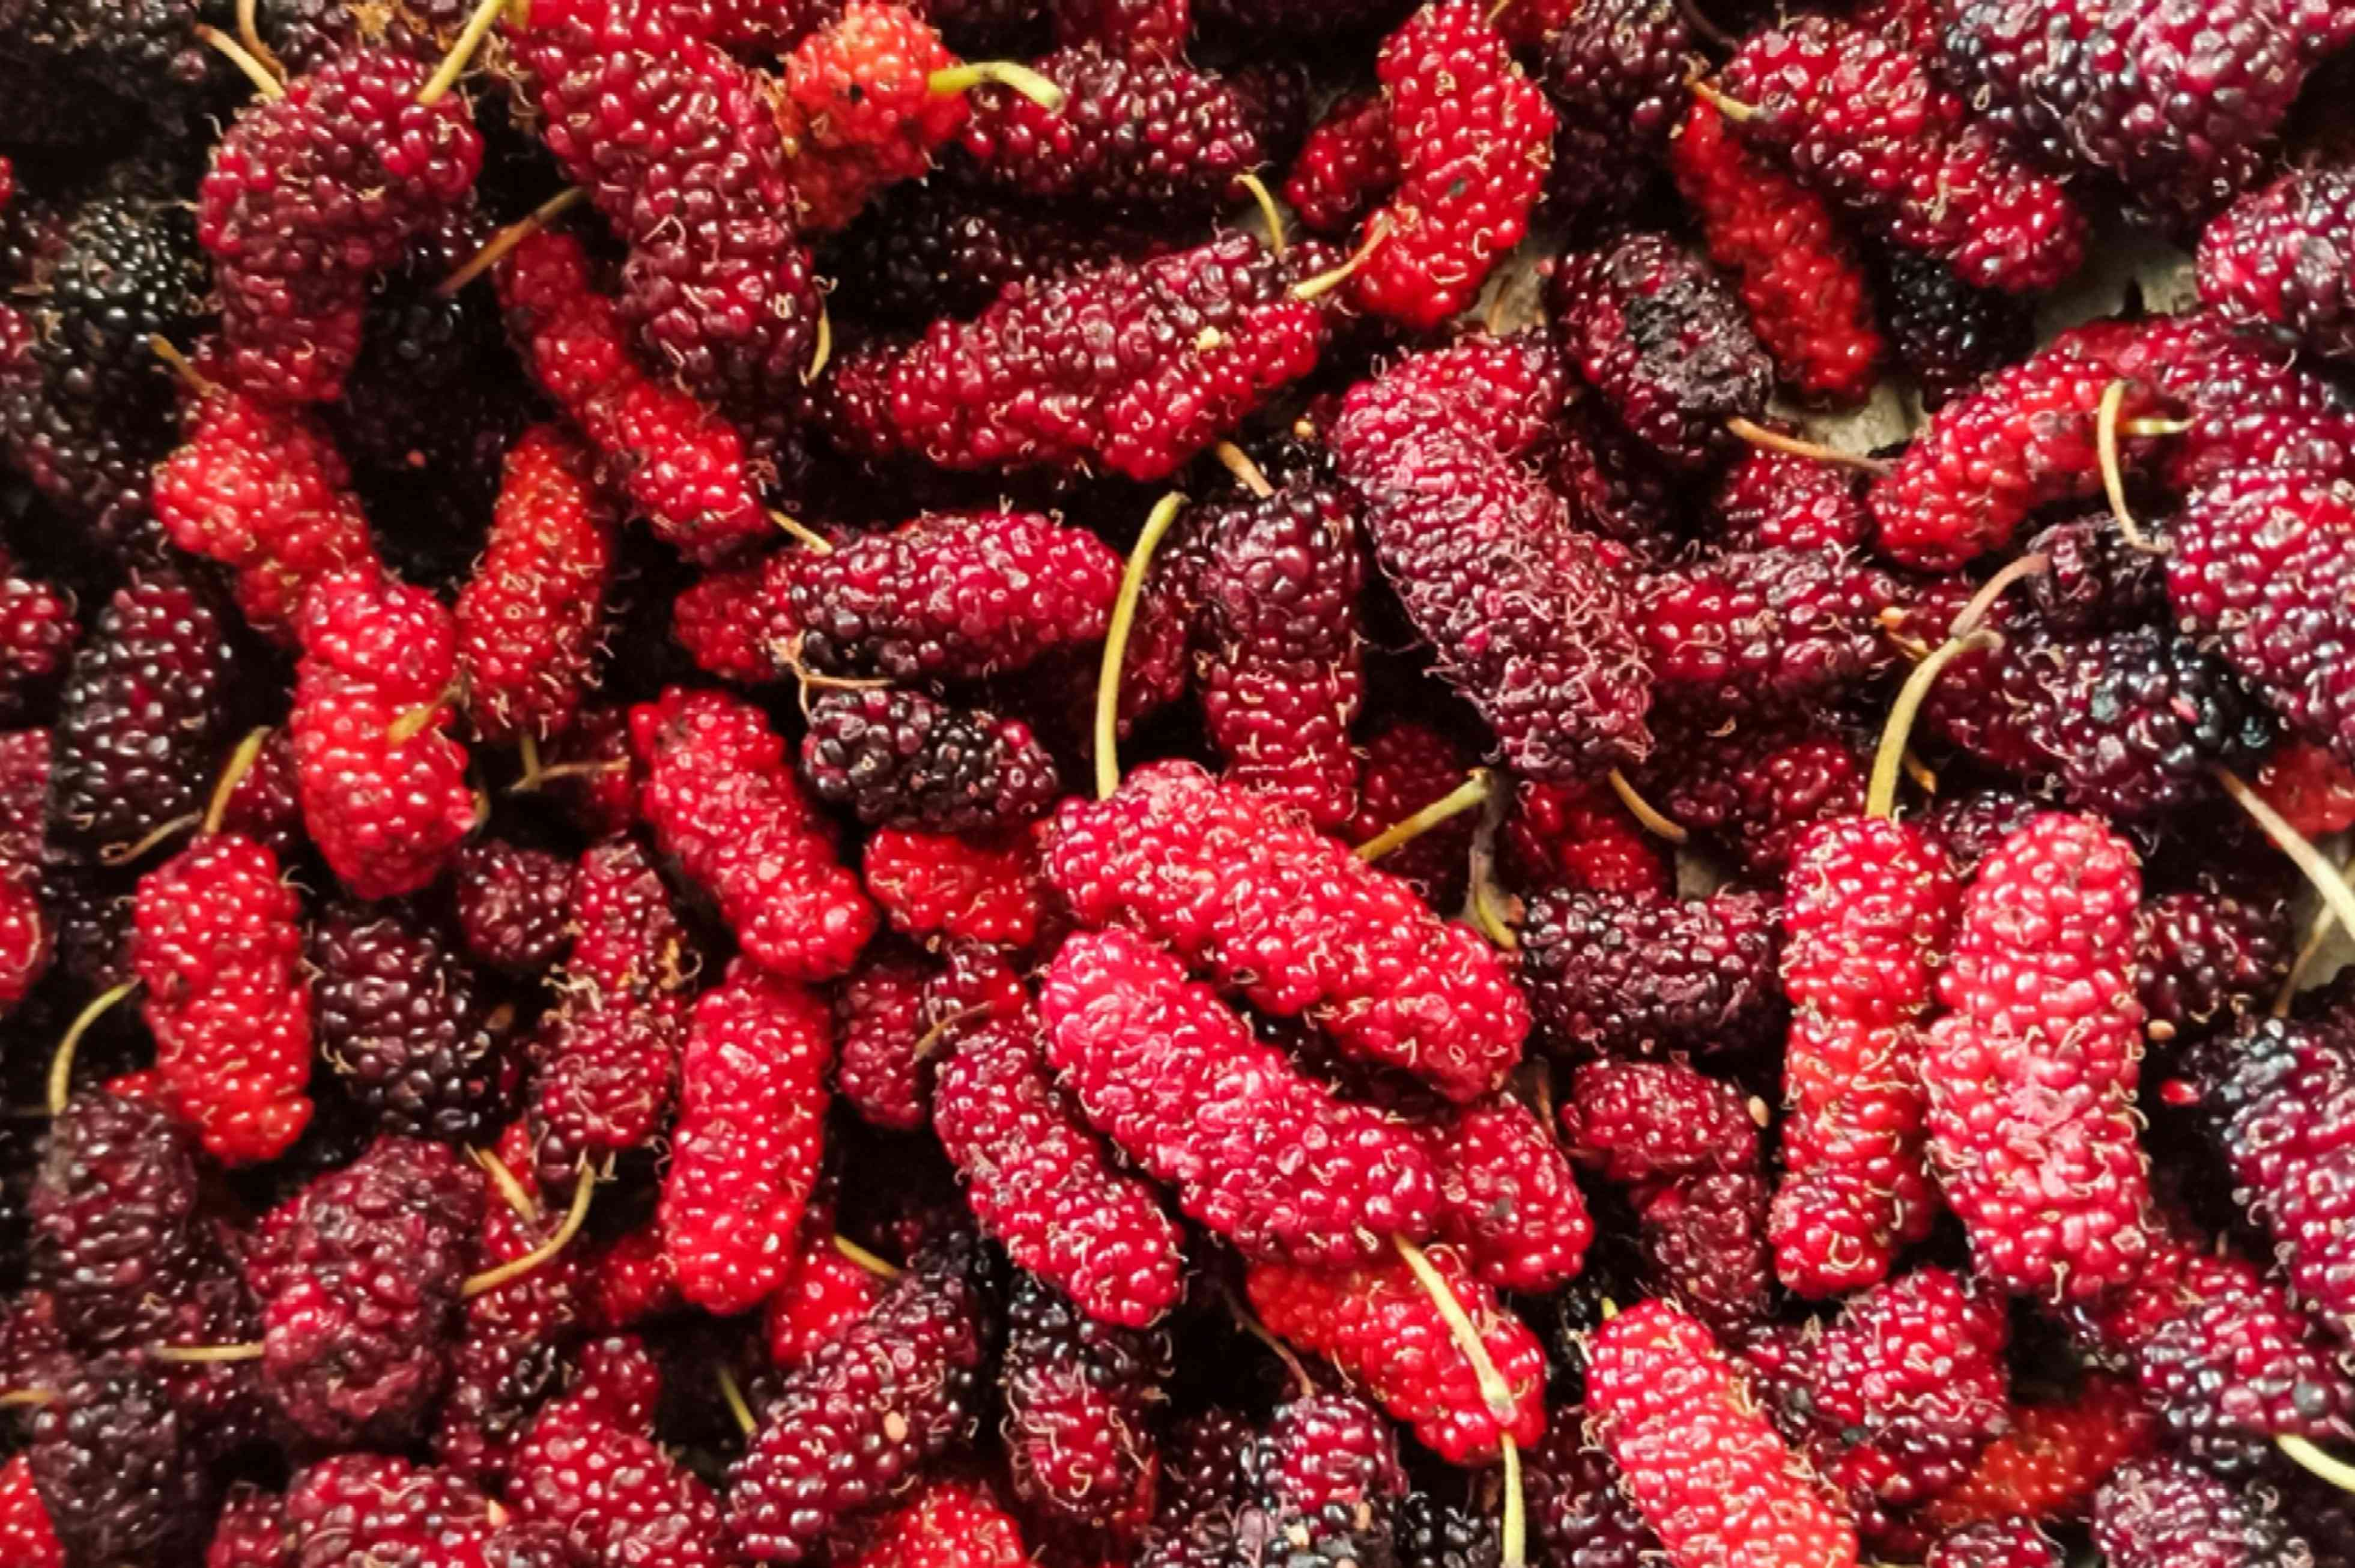 Bright and dark red mulberry berries stacked on each other closeup